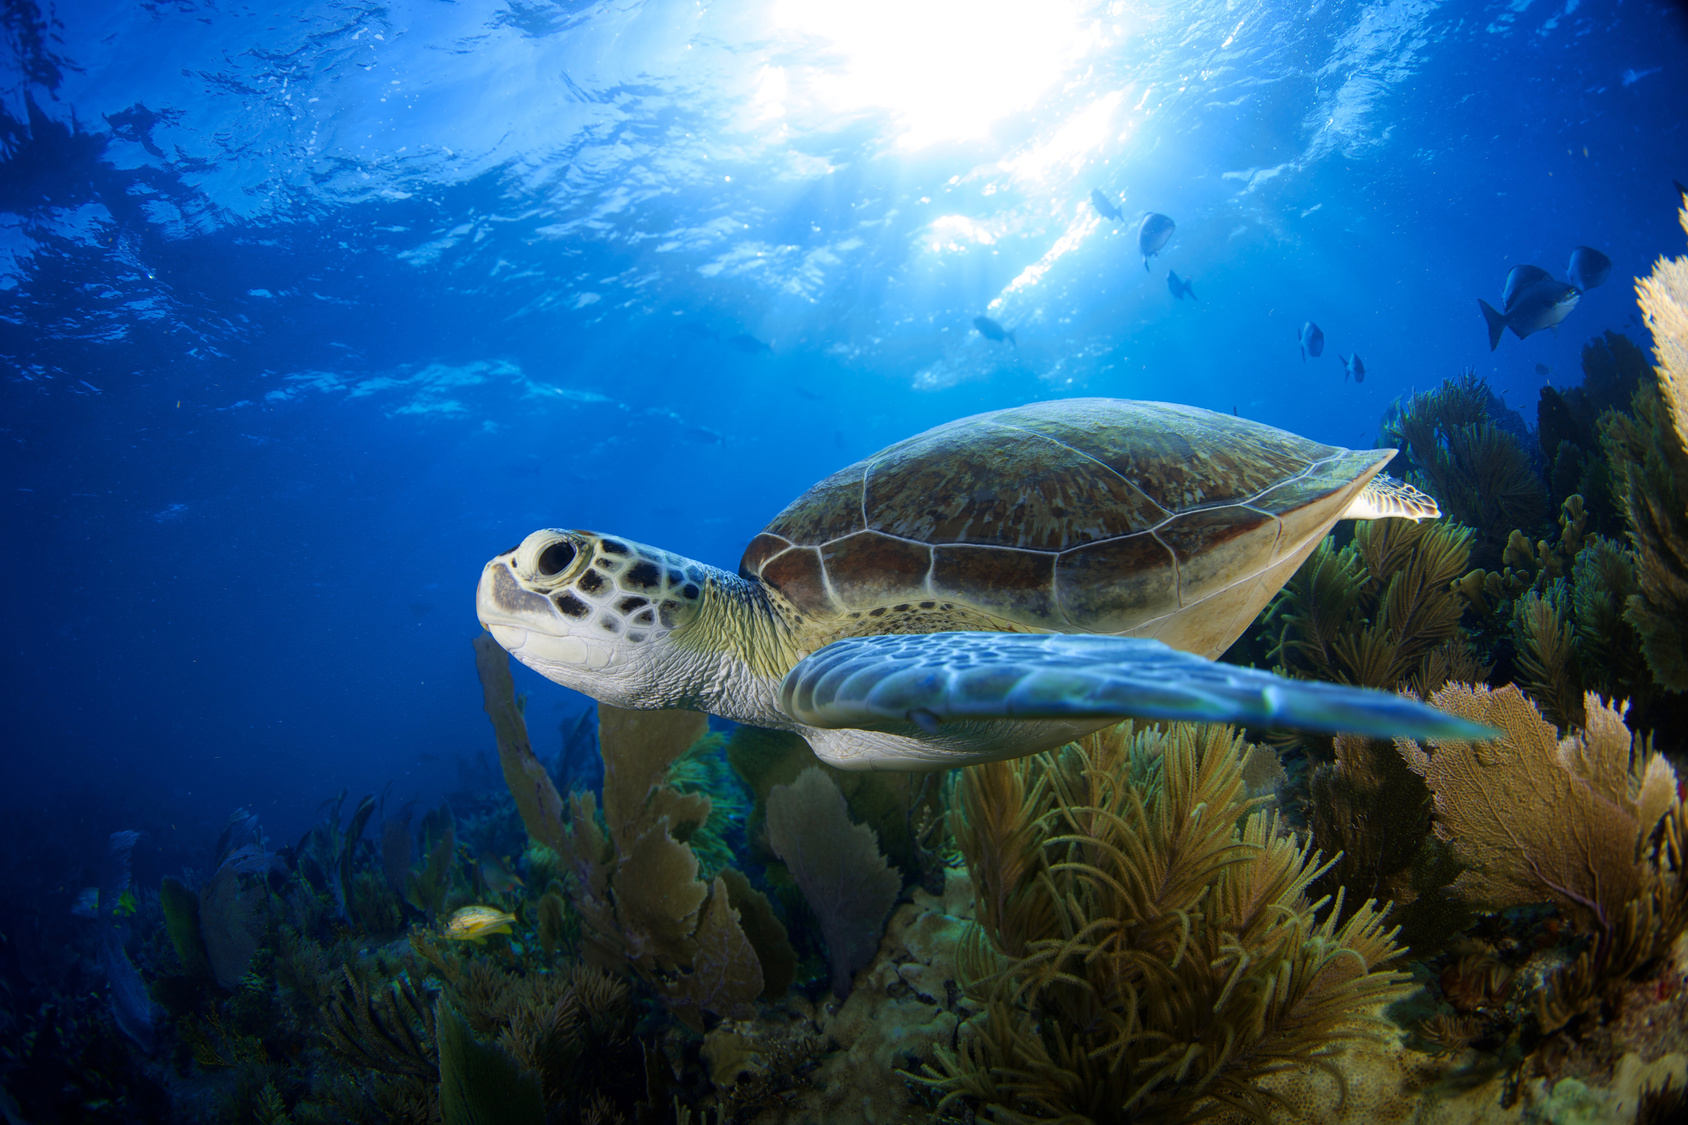 Green Sea turtle swimming amidst coral and sunlight